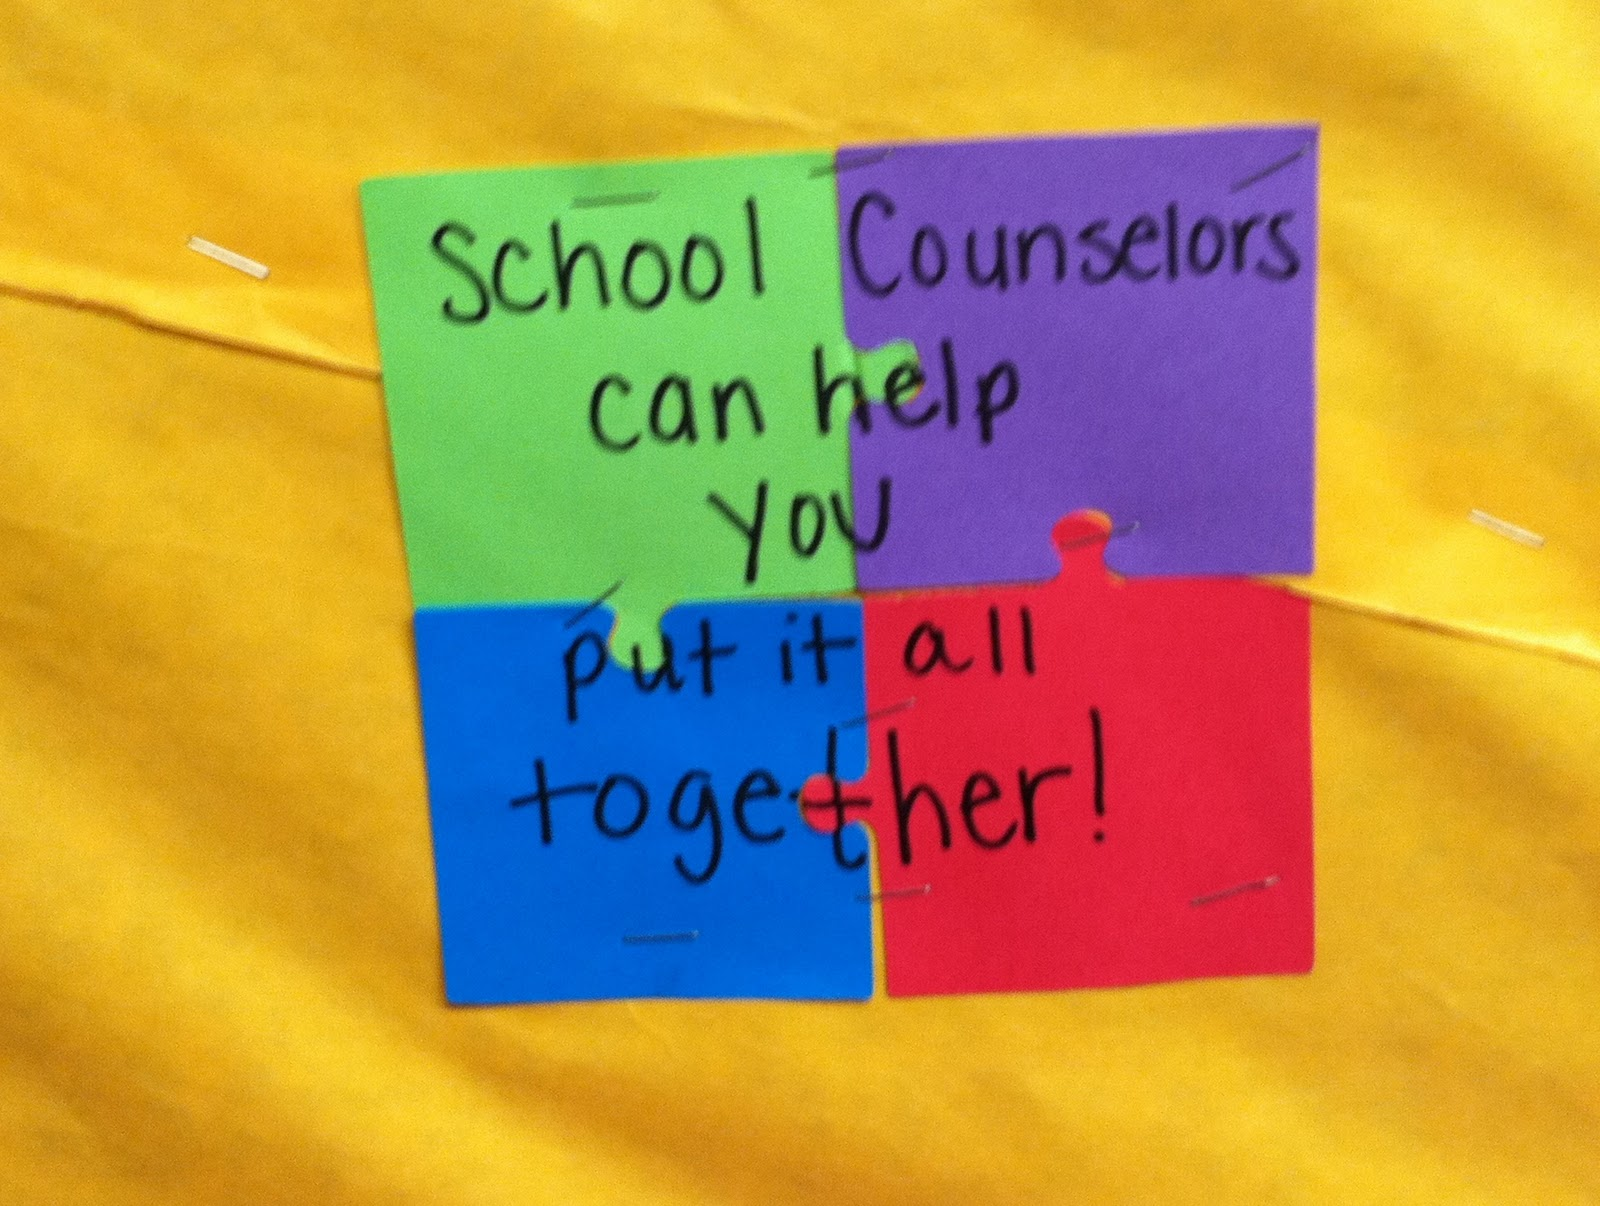 School Counselor Blog November 2011